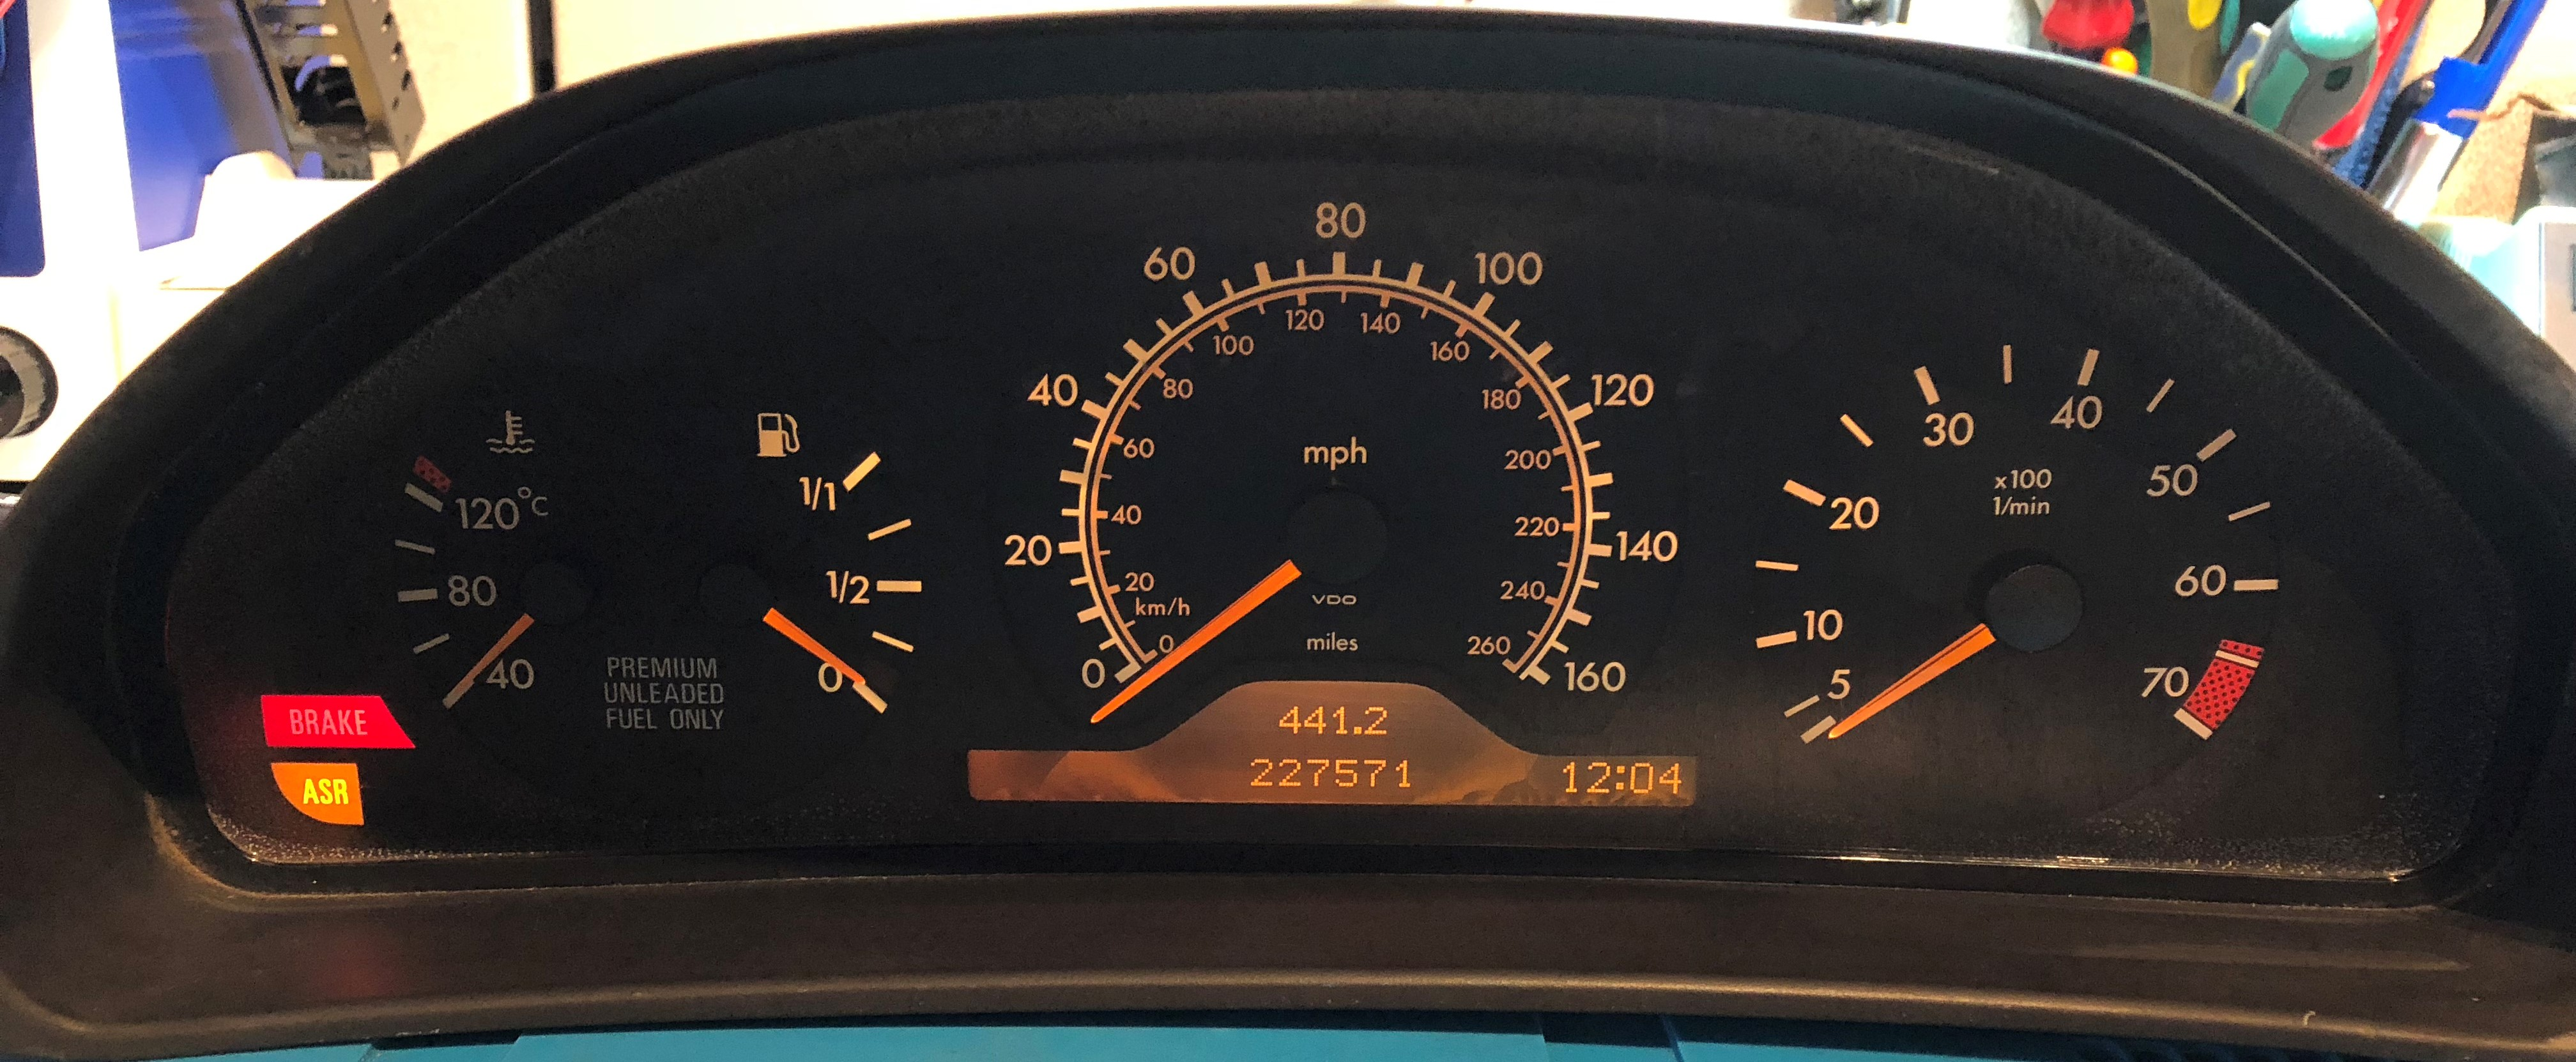 1997 MERCEDES E320 USED DASHBOARD INSTRUMENT CLUSTER FOR SALE (MPH)